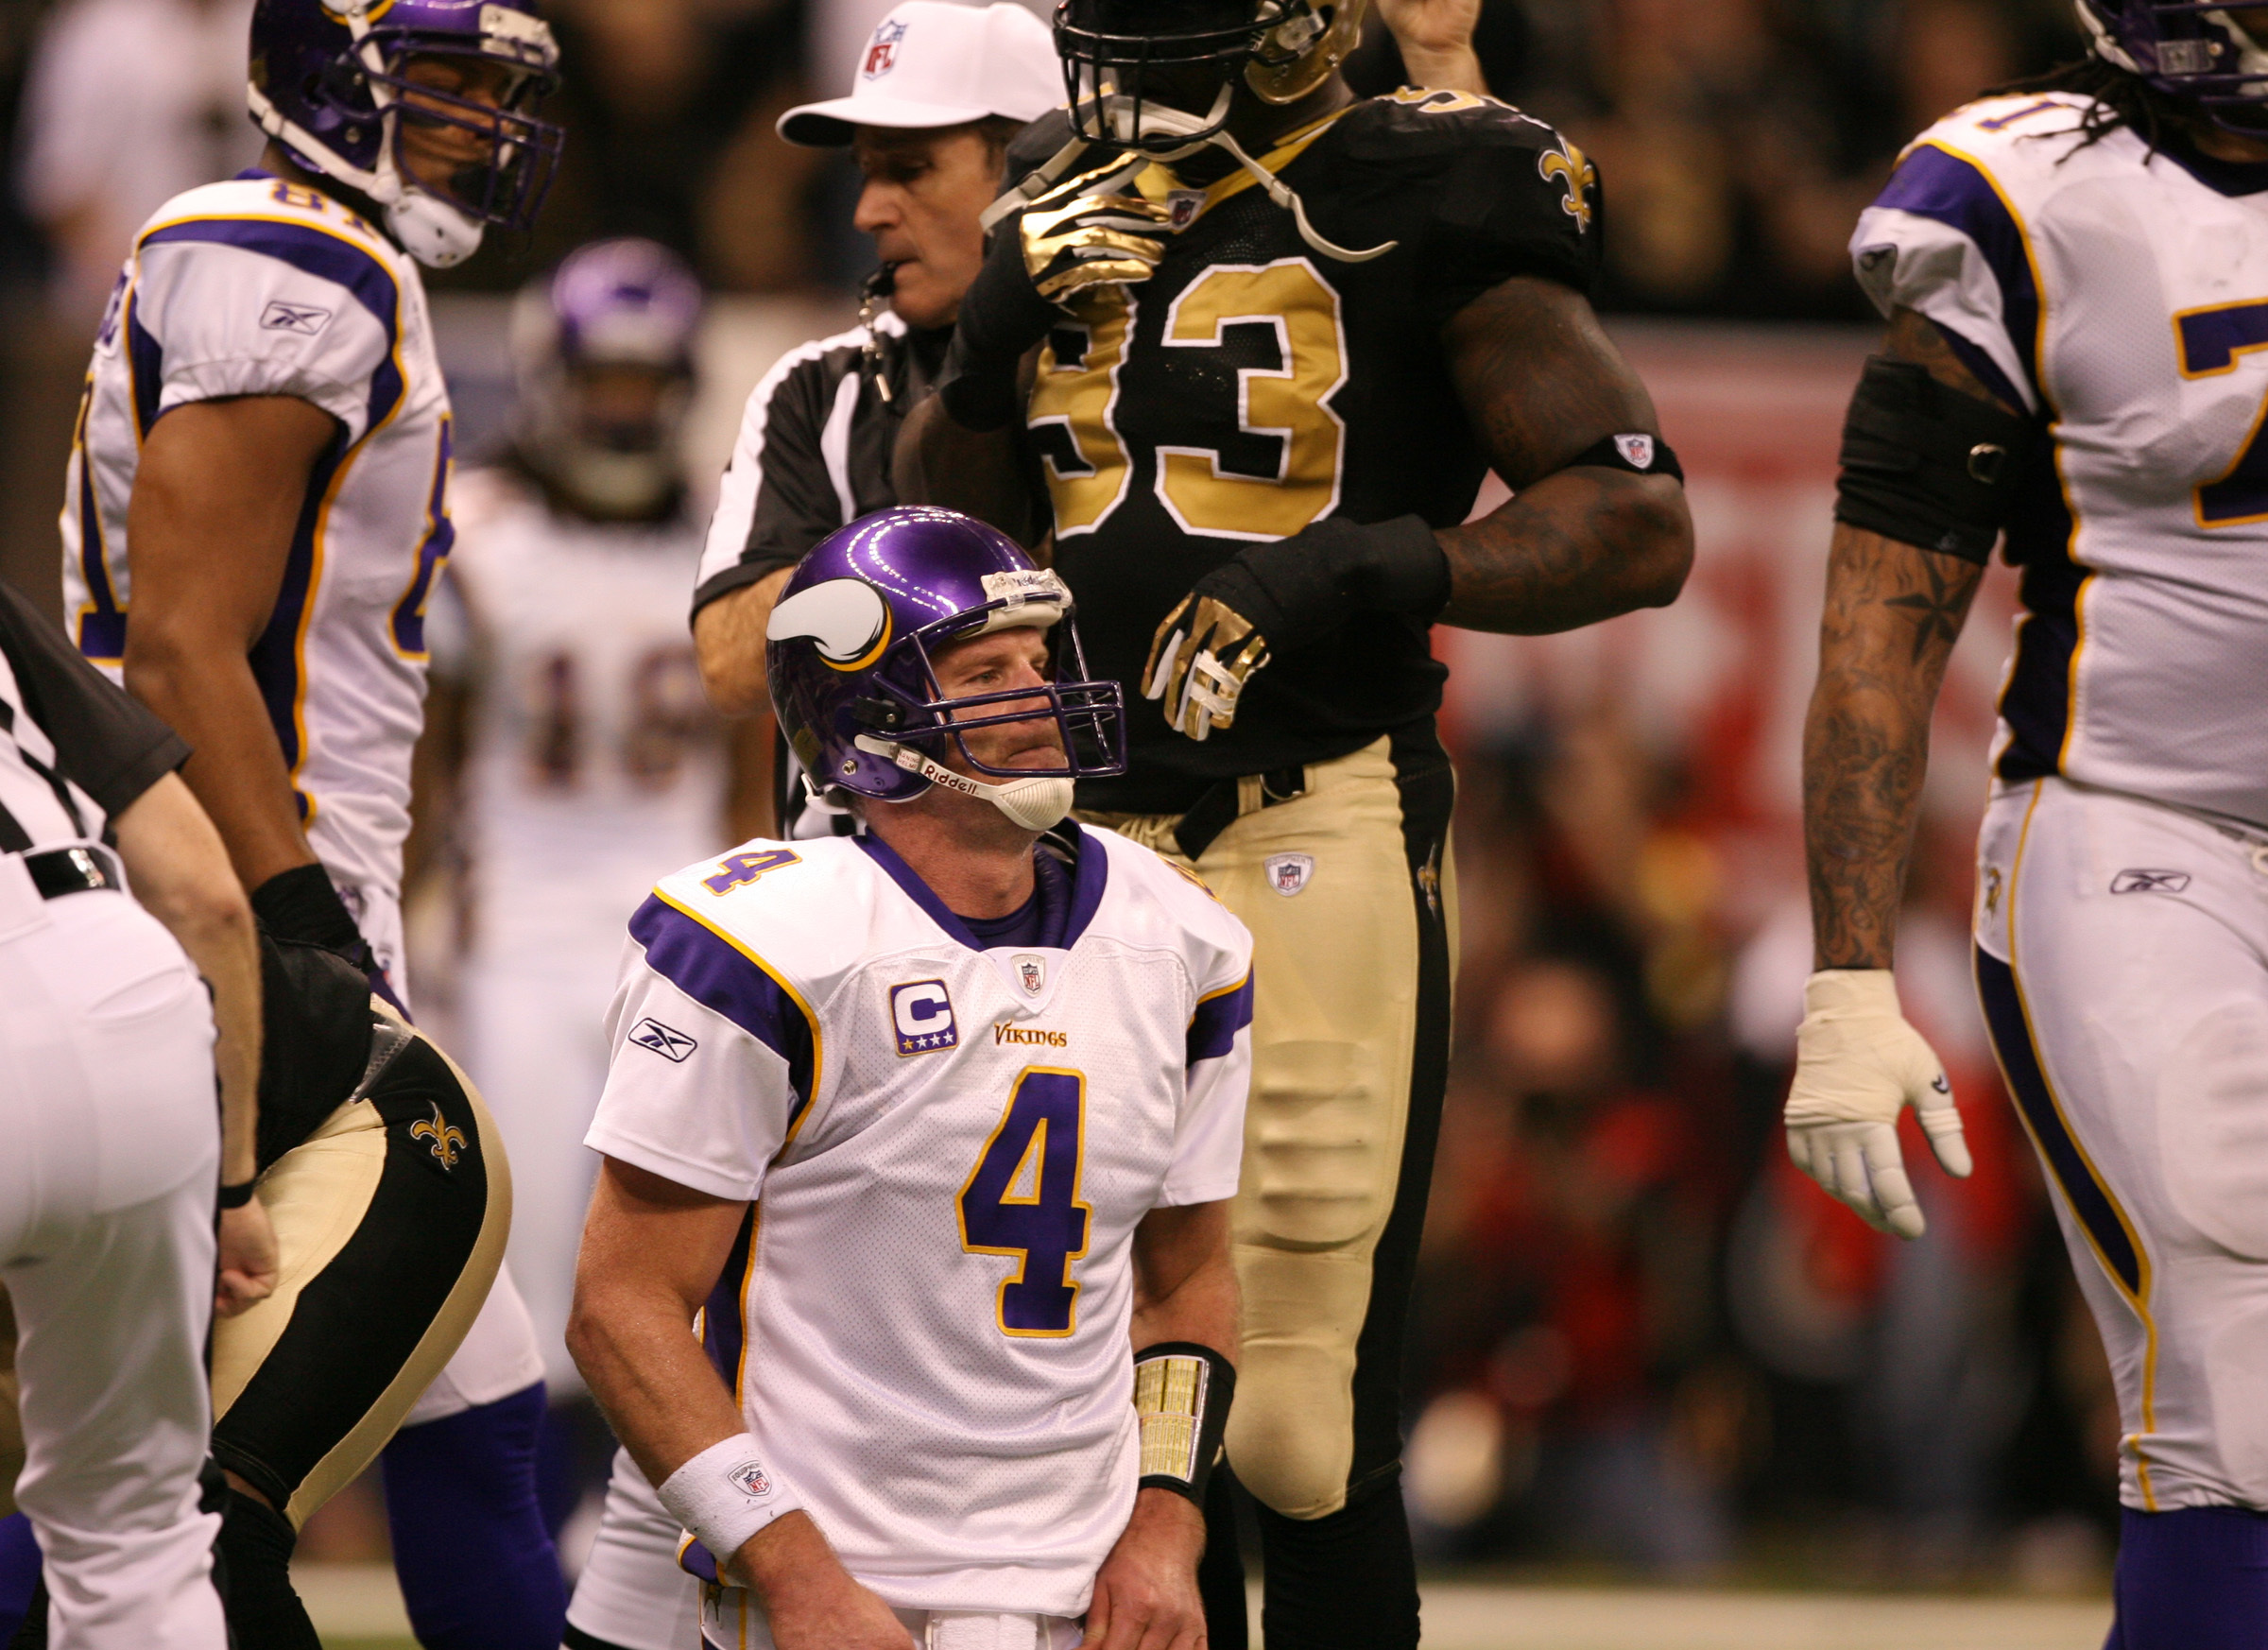 Brett Favre took quite a few extra hits against the New Orleans Saints in the 2010 NFC Championship Game.